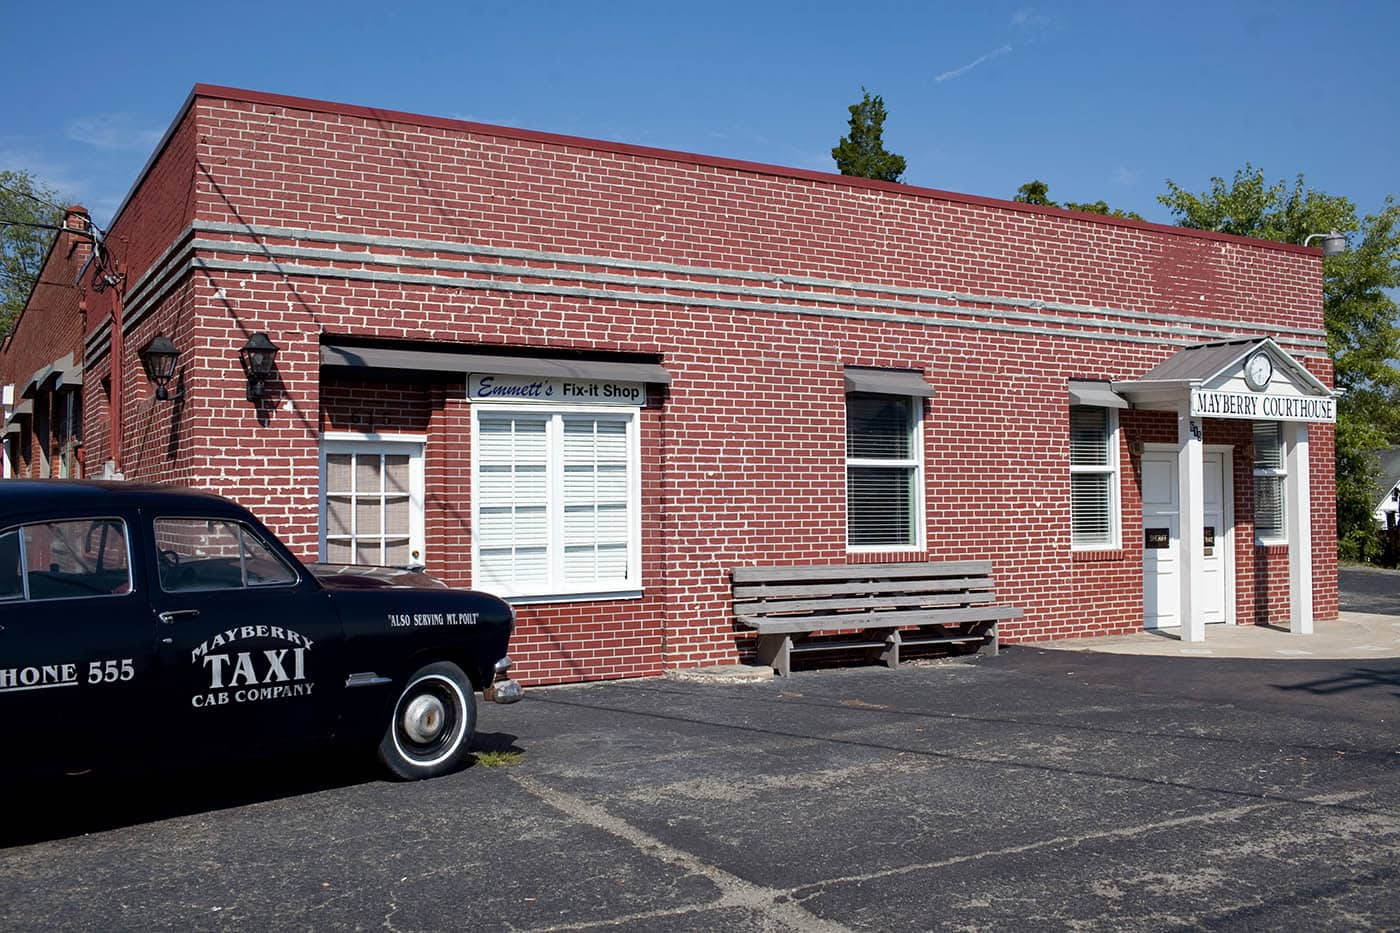 Courthouse in Mount Airy, North Carolina - Home of Mayberry and Andy Griffith